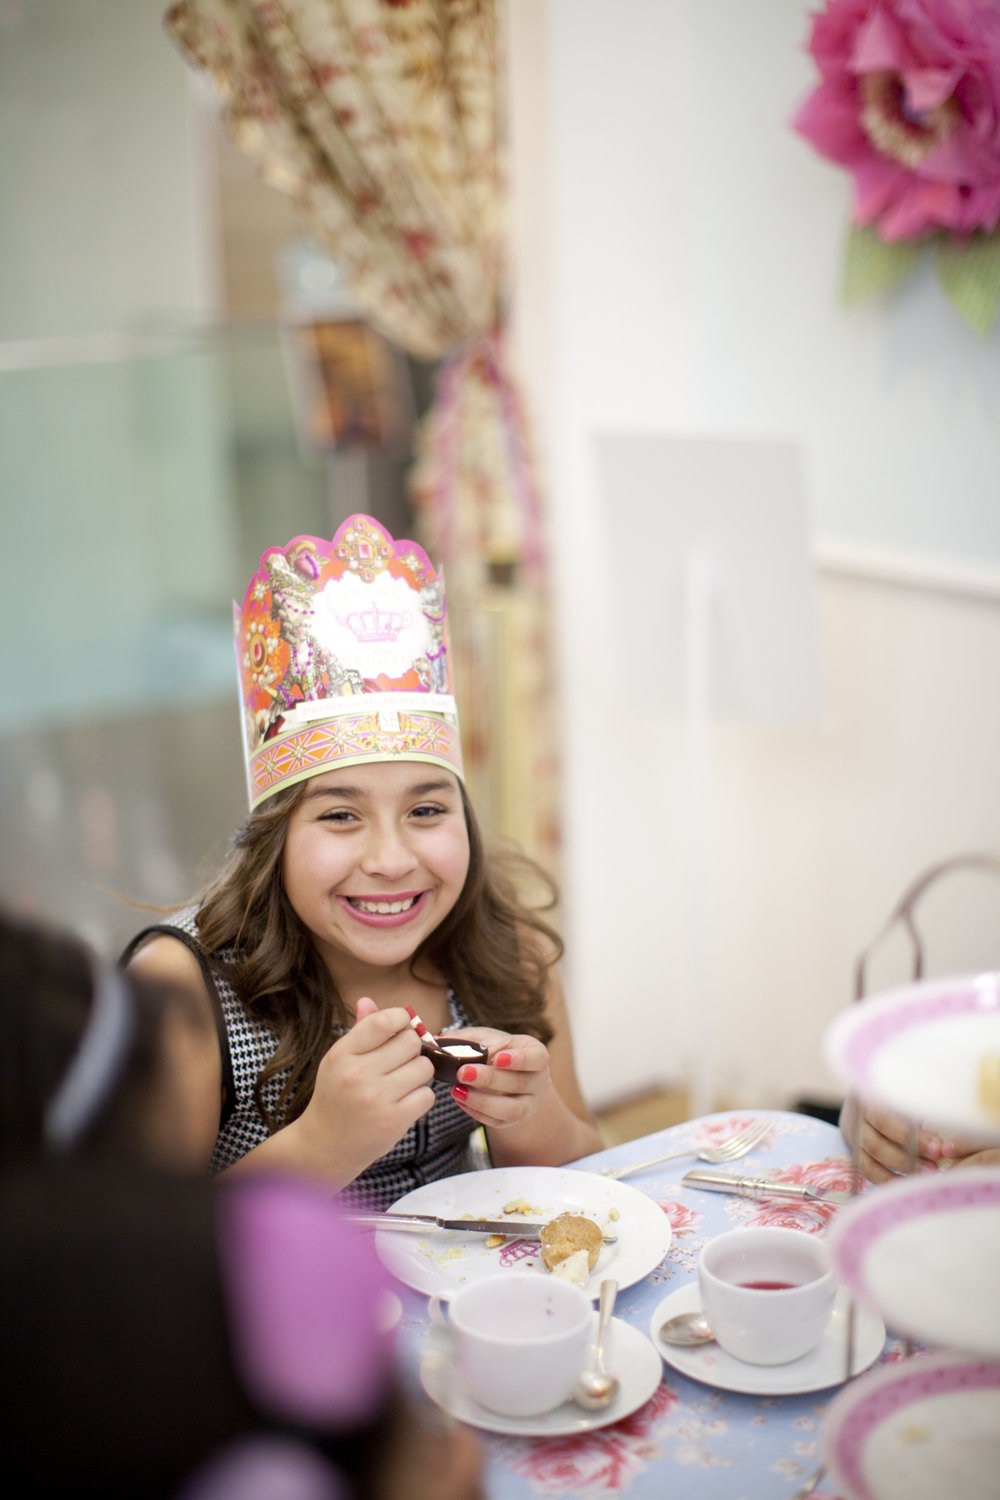 sophia_tea_party_crown_and_crumpet_san_francisco_photography_067.jpg